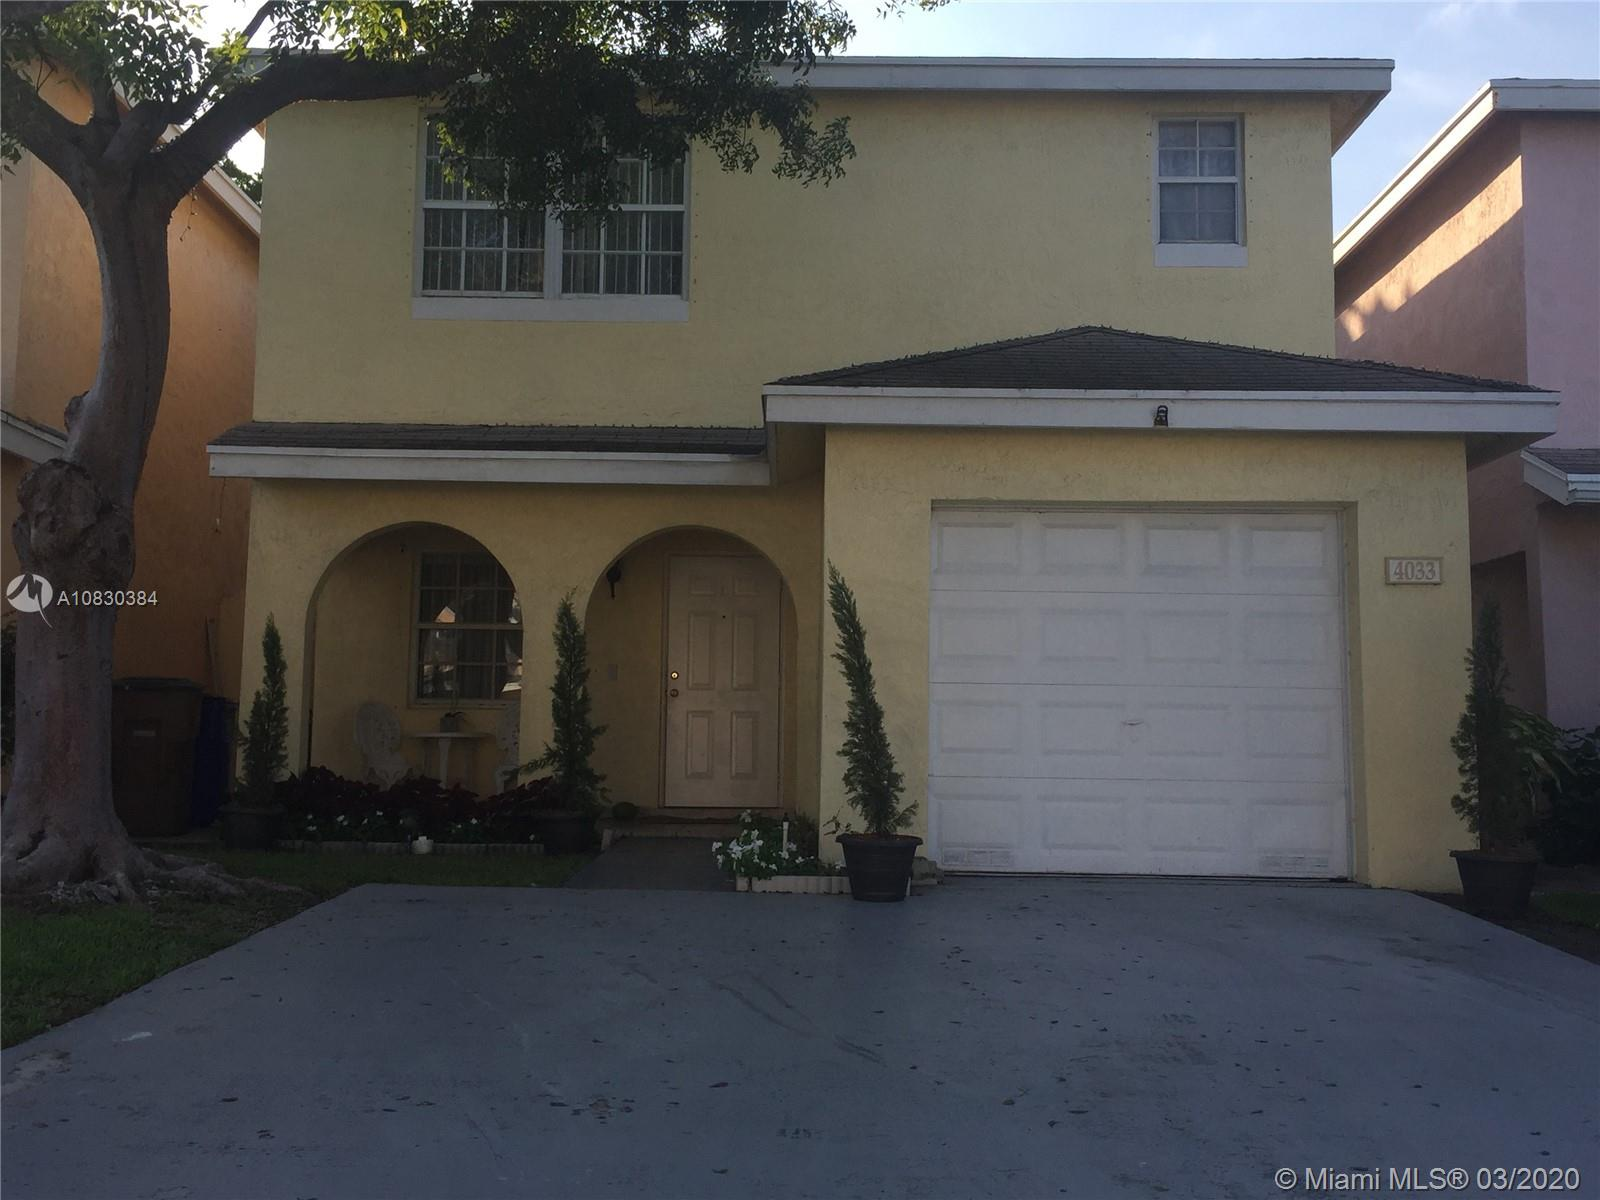 Beautiful bright, spacious 2 story single family home in the quiet Eastridge neighborhood with 3/2.5 Baths on Large lot. This beautiful property was completely redone and features; One covered car garage plus space for 4 more in front, Florida and Dining Room; New Kitchen Cabinets & Stainless Steel appliances, Washer and Drier Inside, Tile Throughout first floor and Laminated on Second. All Hurricane Shutters, Large spacious backyard with covered area for barbecue and get together with friends and family. Nice and quiet community with plenty of Guest Parking, Pool and very low maintenance, Walking distance to Rail Road Train Station, Major roadways, Supermarket, Banks, Restaurants, casinos and shopping malls. House is rented month to month, Great for Investors and high demand for rentals!